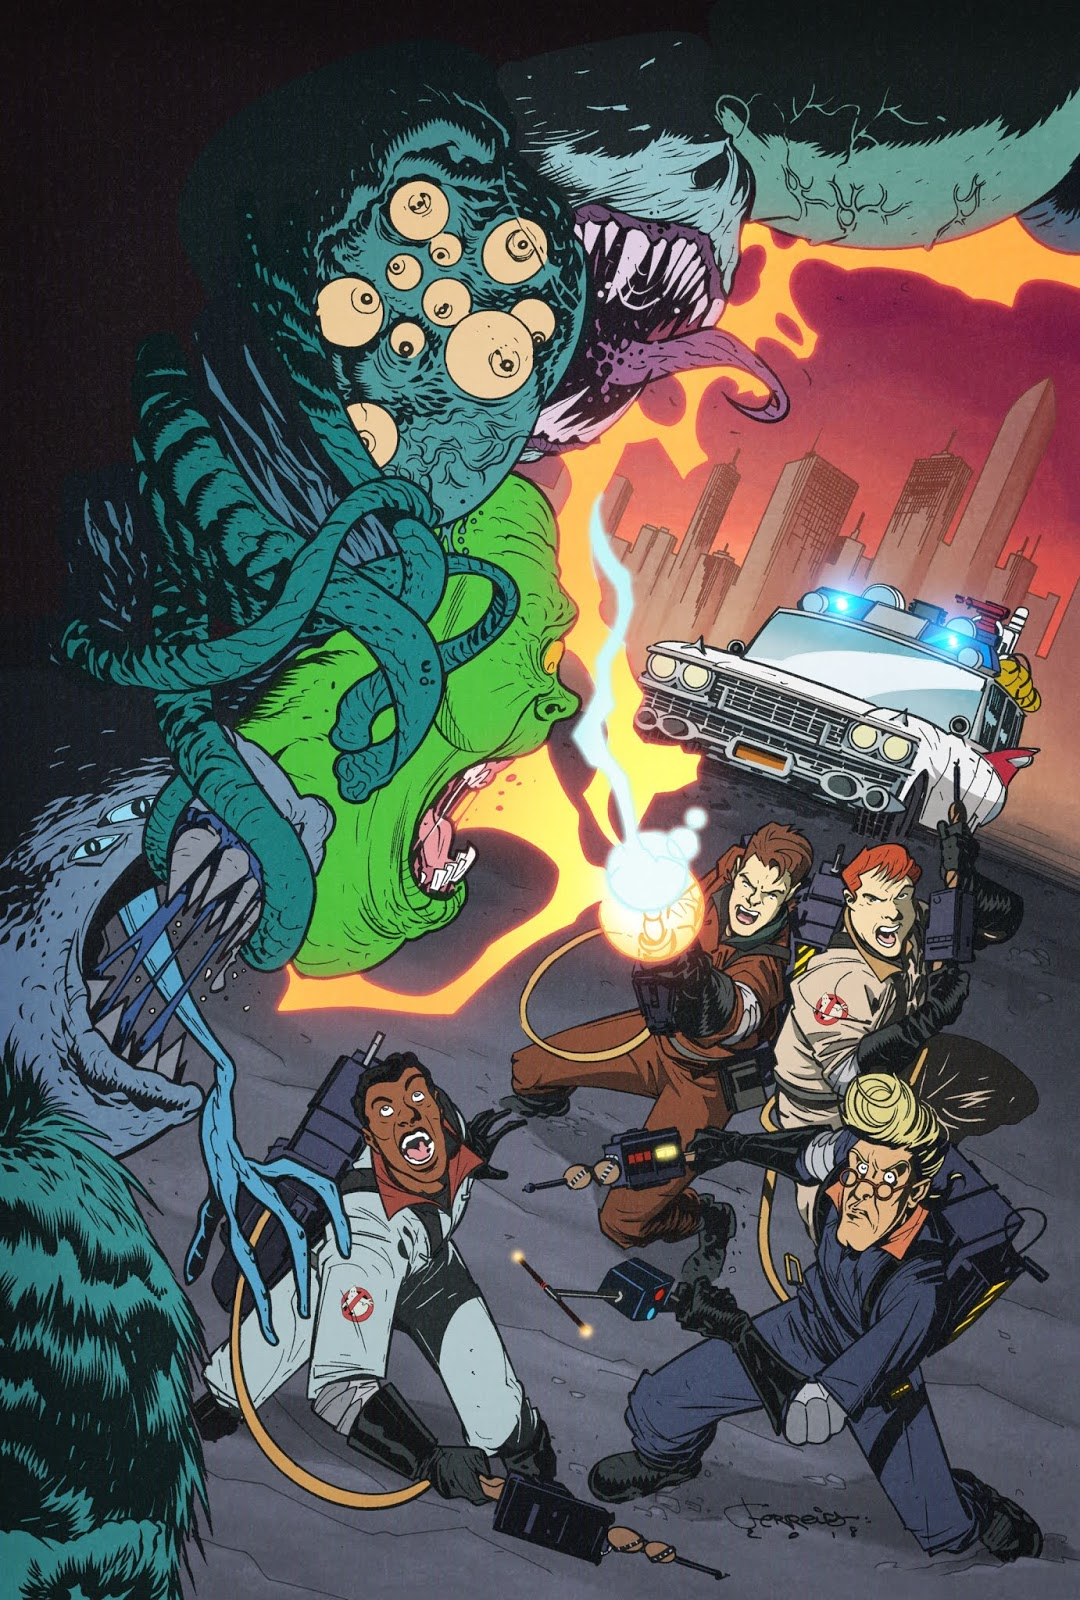 Ghostbusters 35th Anniversary comic